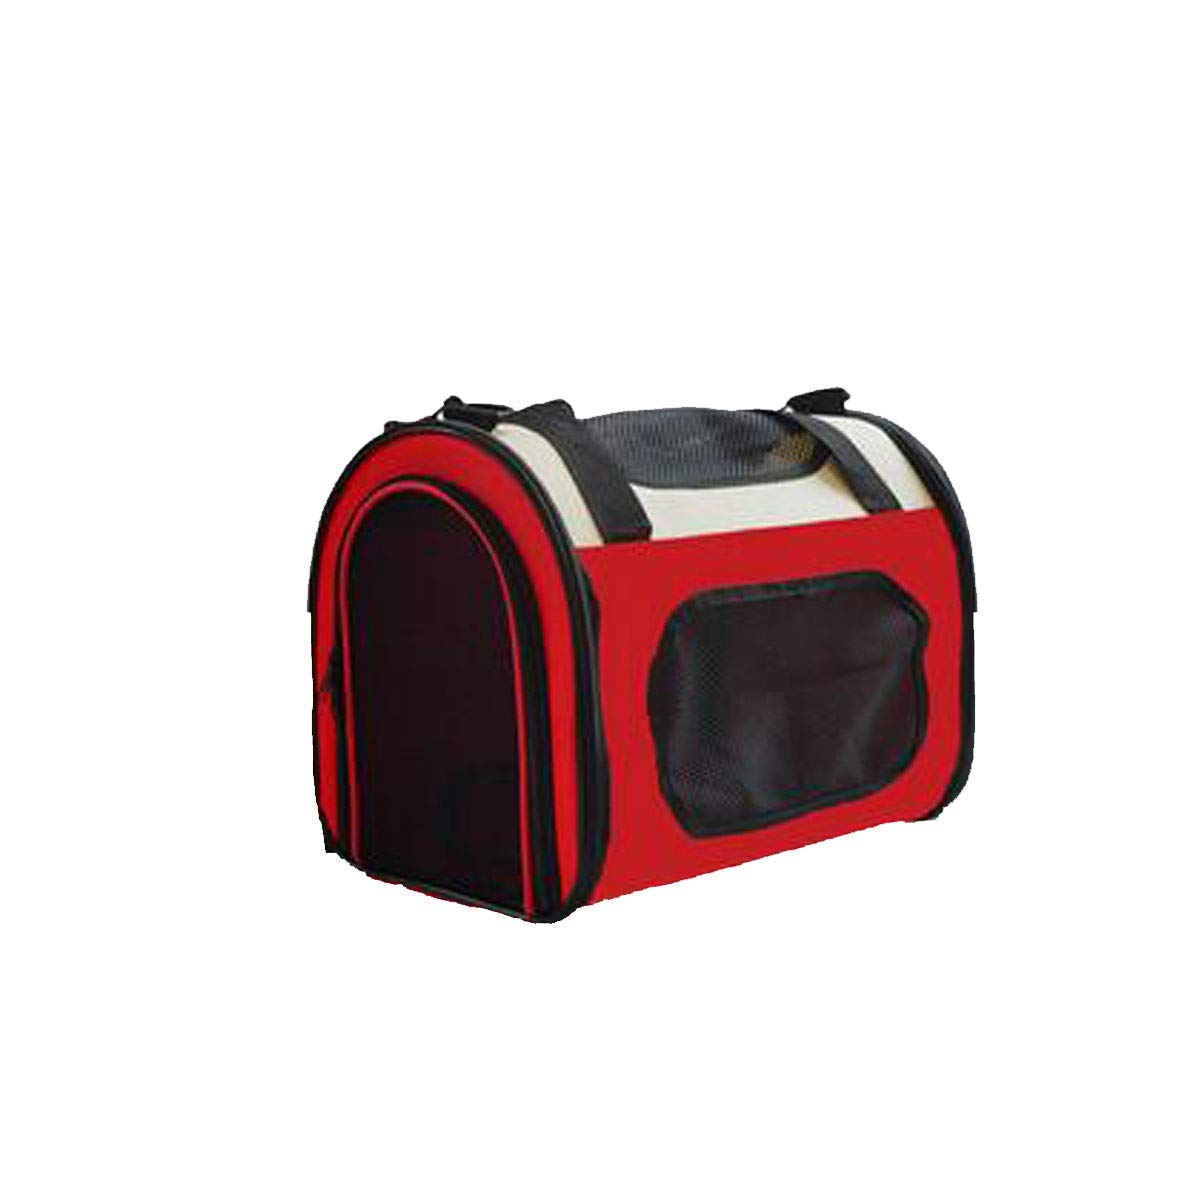 Red Portable pet Travel Backpack for Cats and Puppies, Suitable for Travel, Hiking, Outdoor Activities, Collapsible pet Diagonal Bags(Brown, Red) (color   Red)